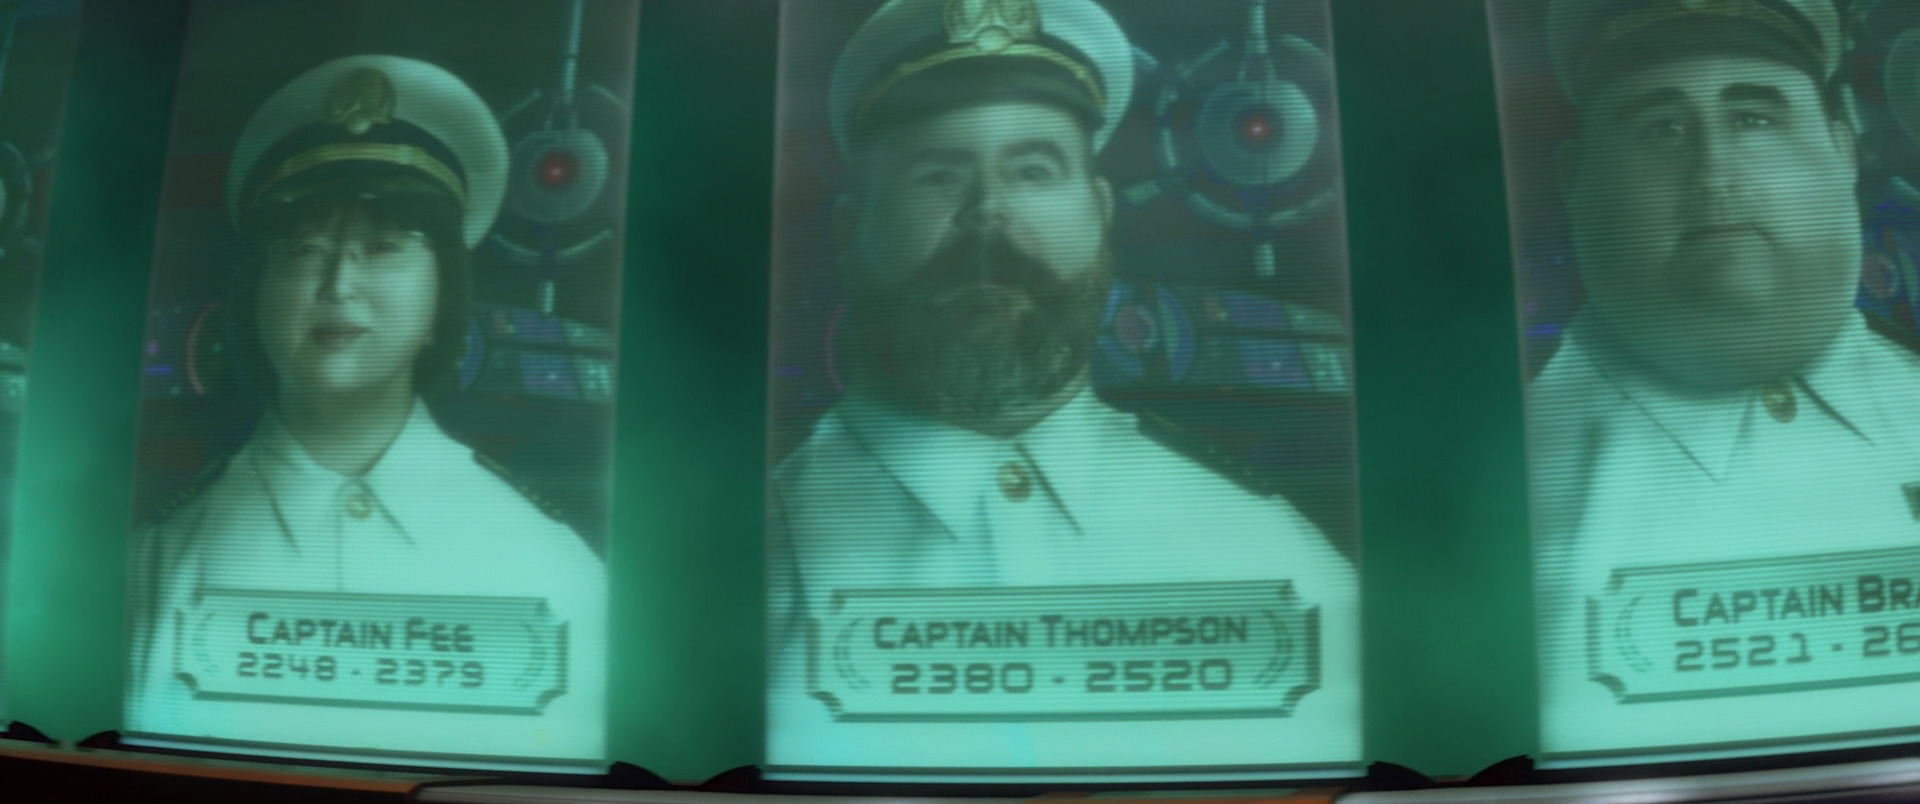 capitaine-thomson-personnage-wall-e-01